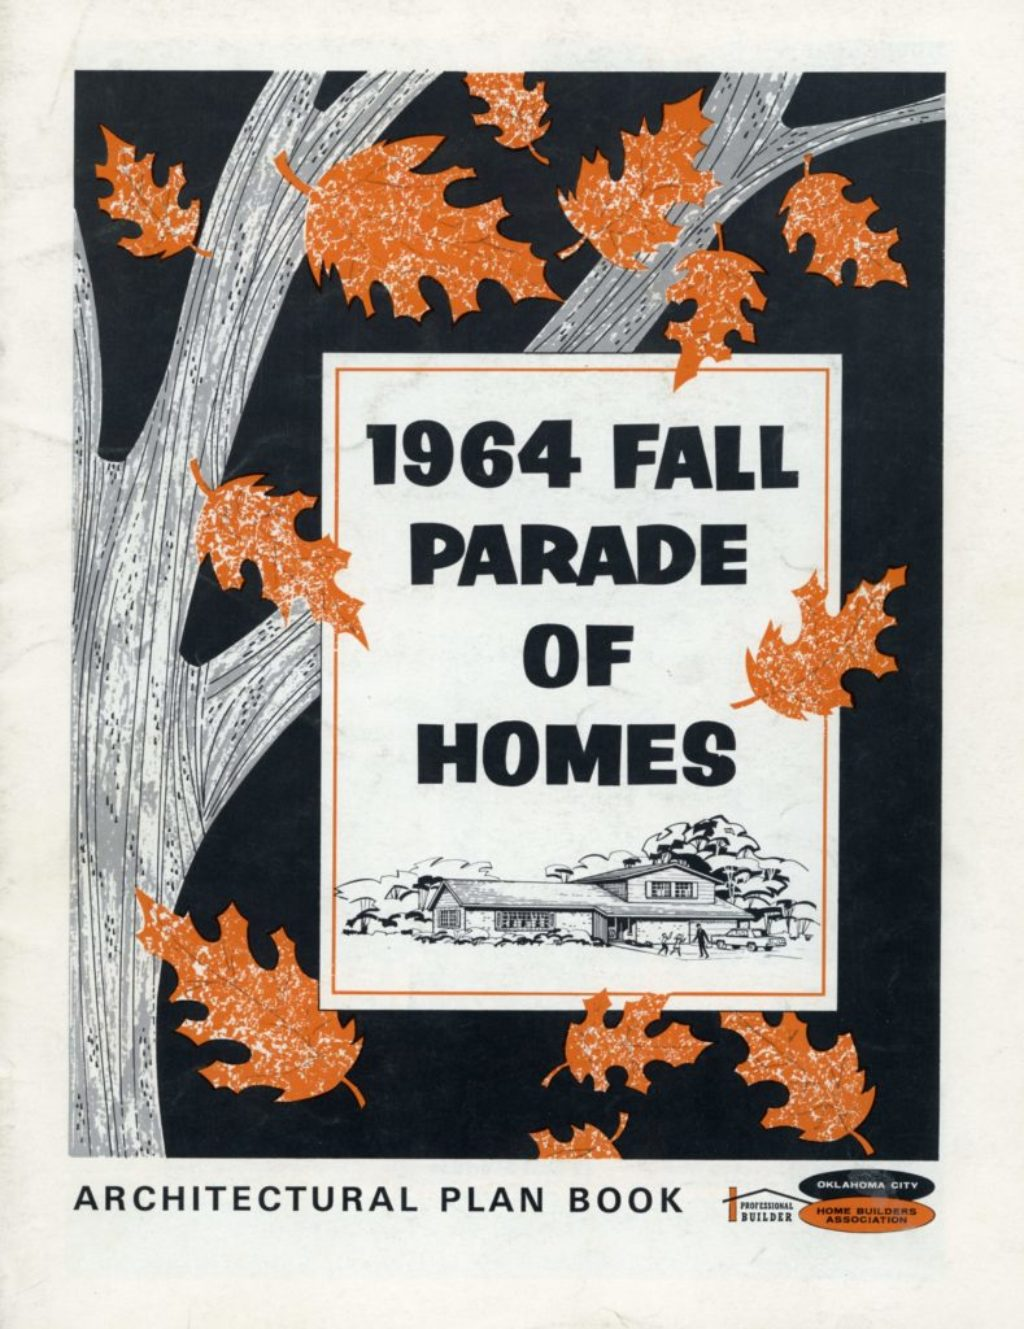 1964 Fall Parade of Homes